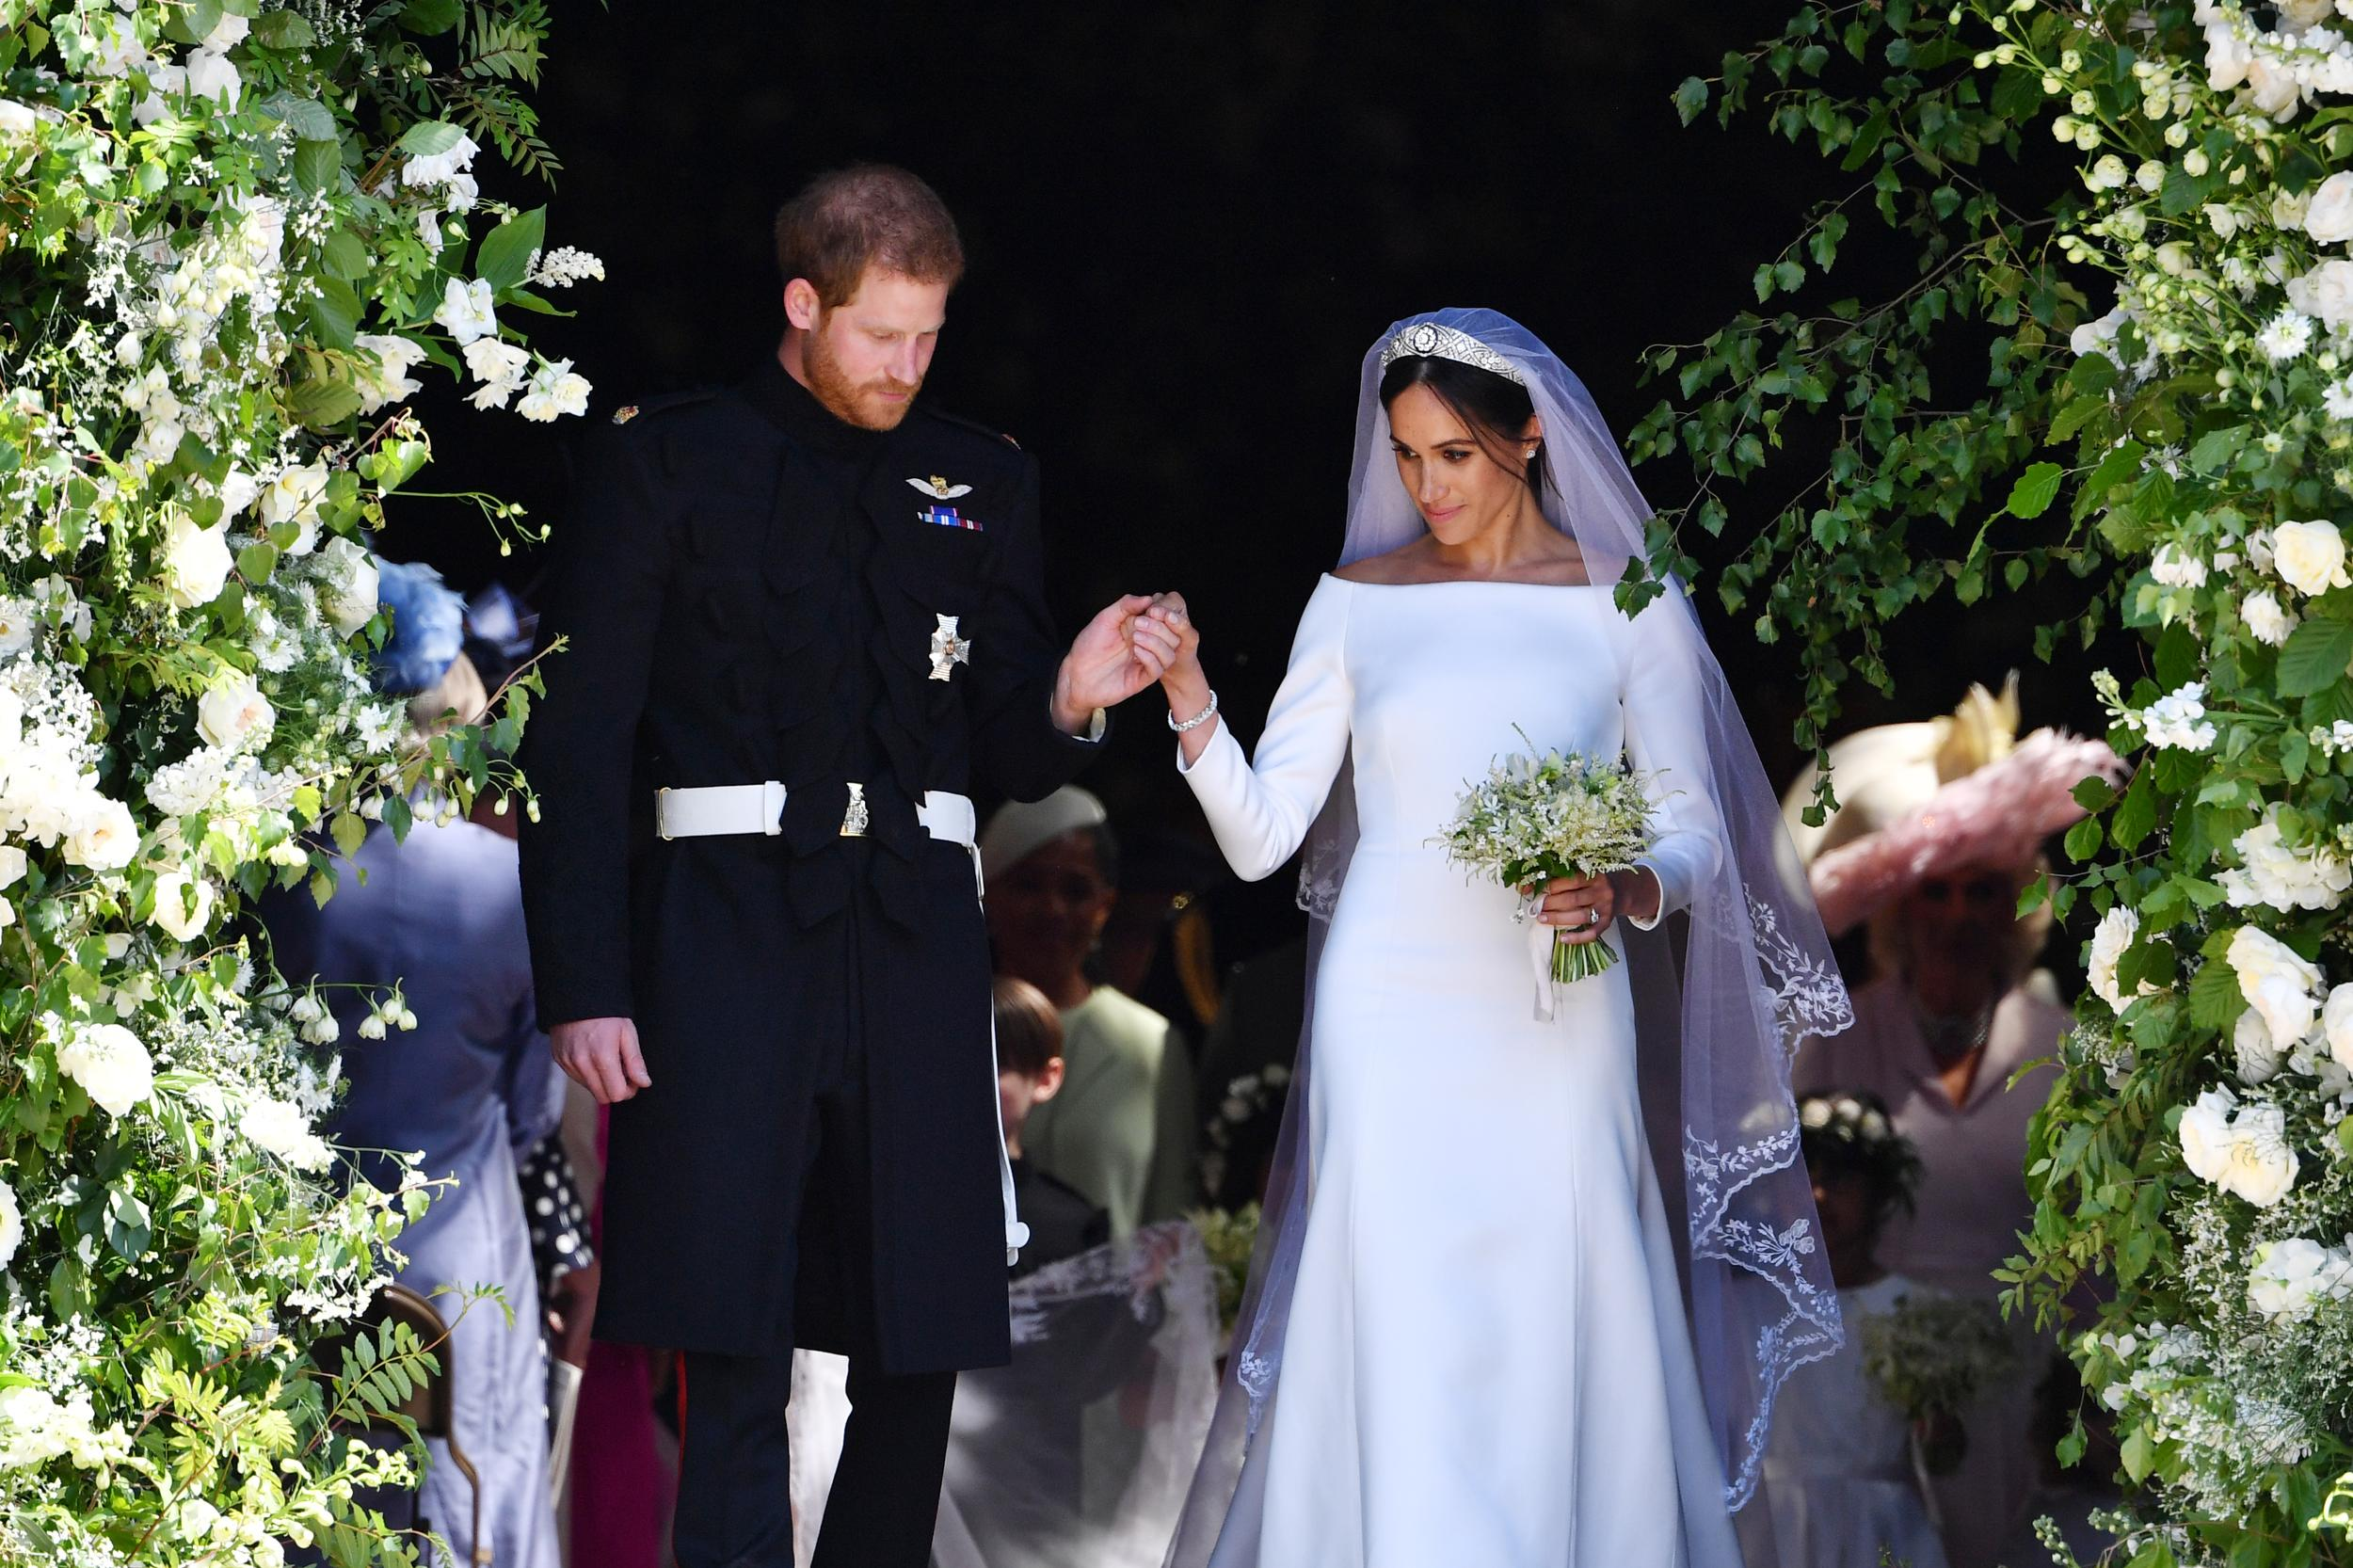 <p>Britain's Prince Harry, Duke of Sussex and his wife Meghan, Duchess of Sussex leave from the West Door of St George's Chapel, Windsor Castle, in Windsor on May 19, 2018 in Windsor, England.</p>  <p>(Photo by Ben STANSALL - WPA Pool/Getty Images)</p>